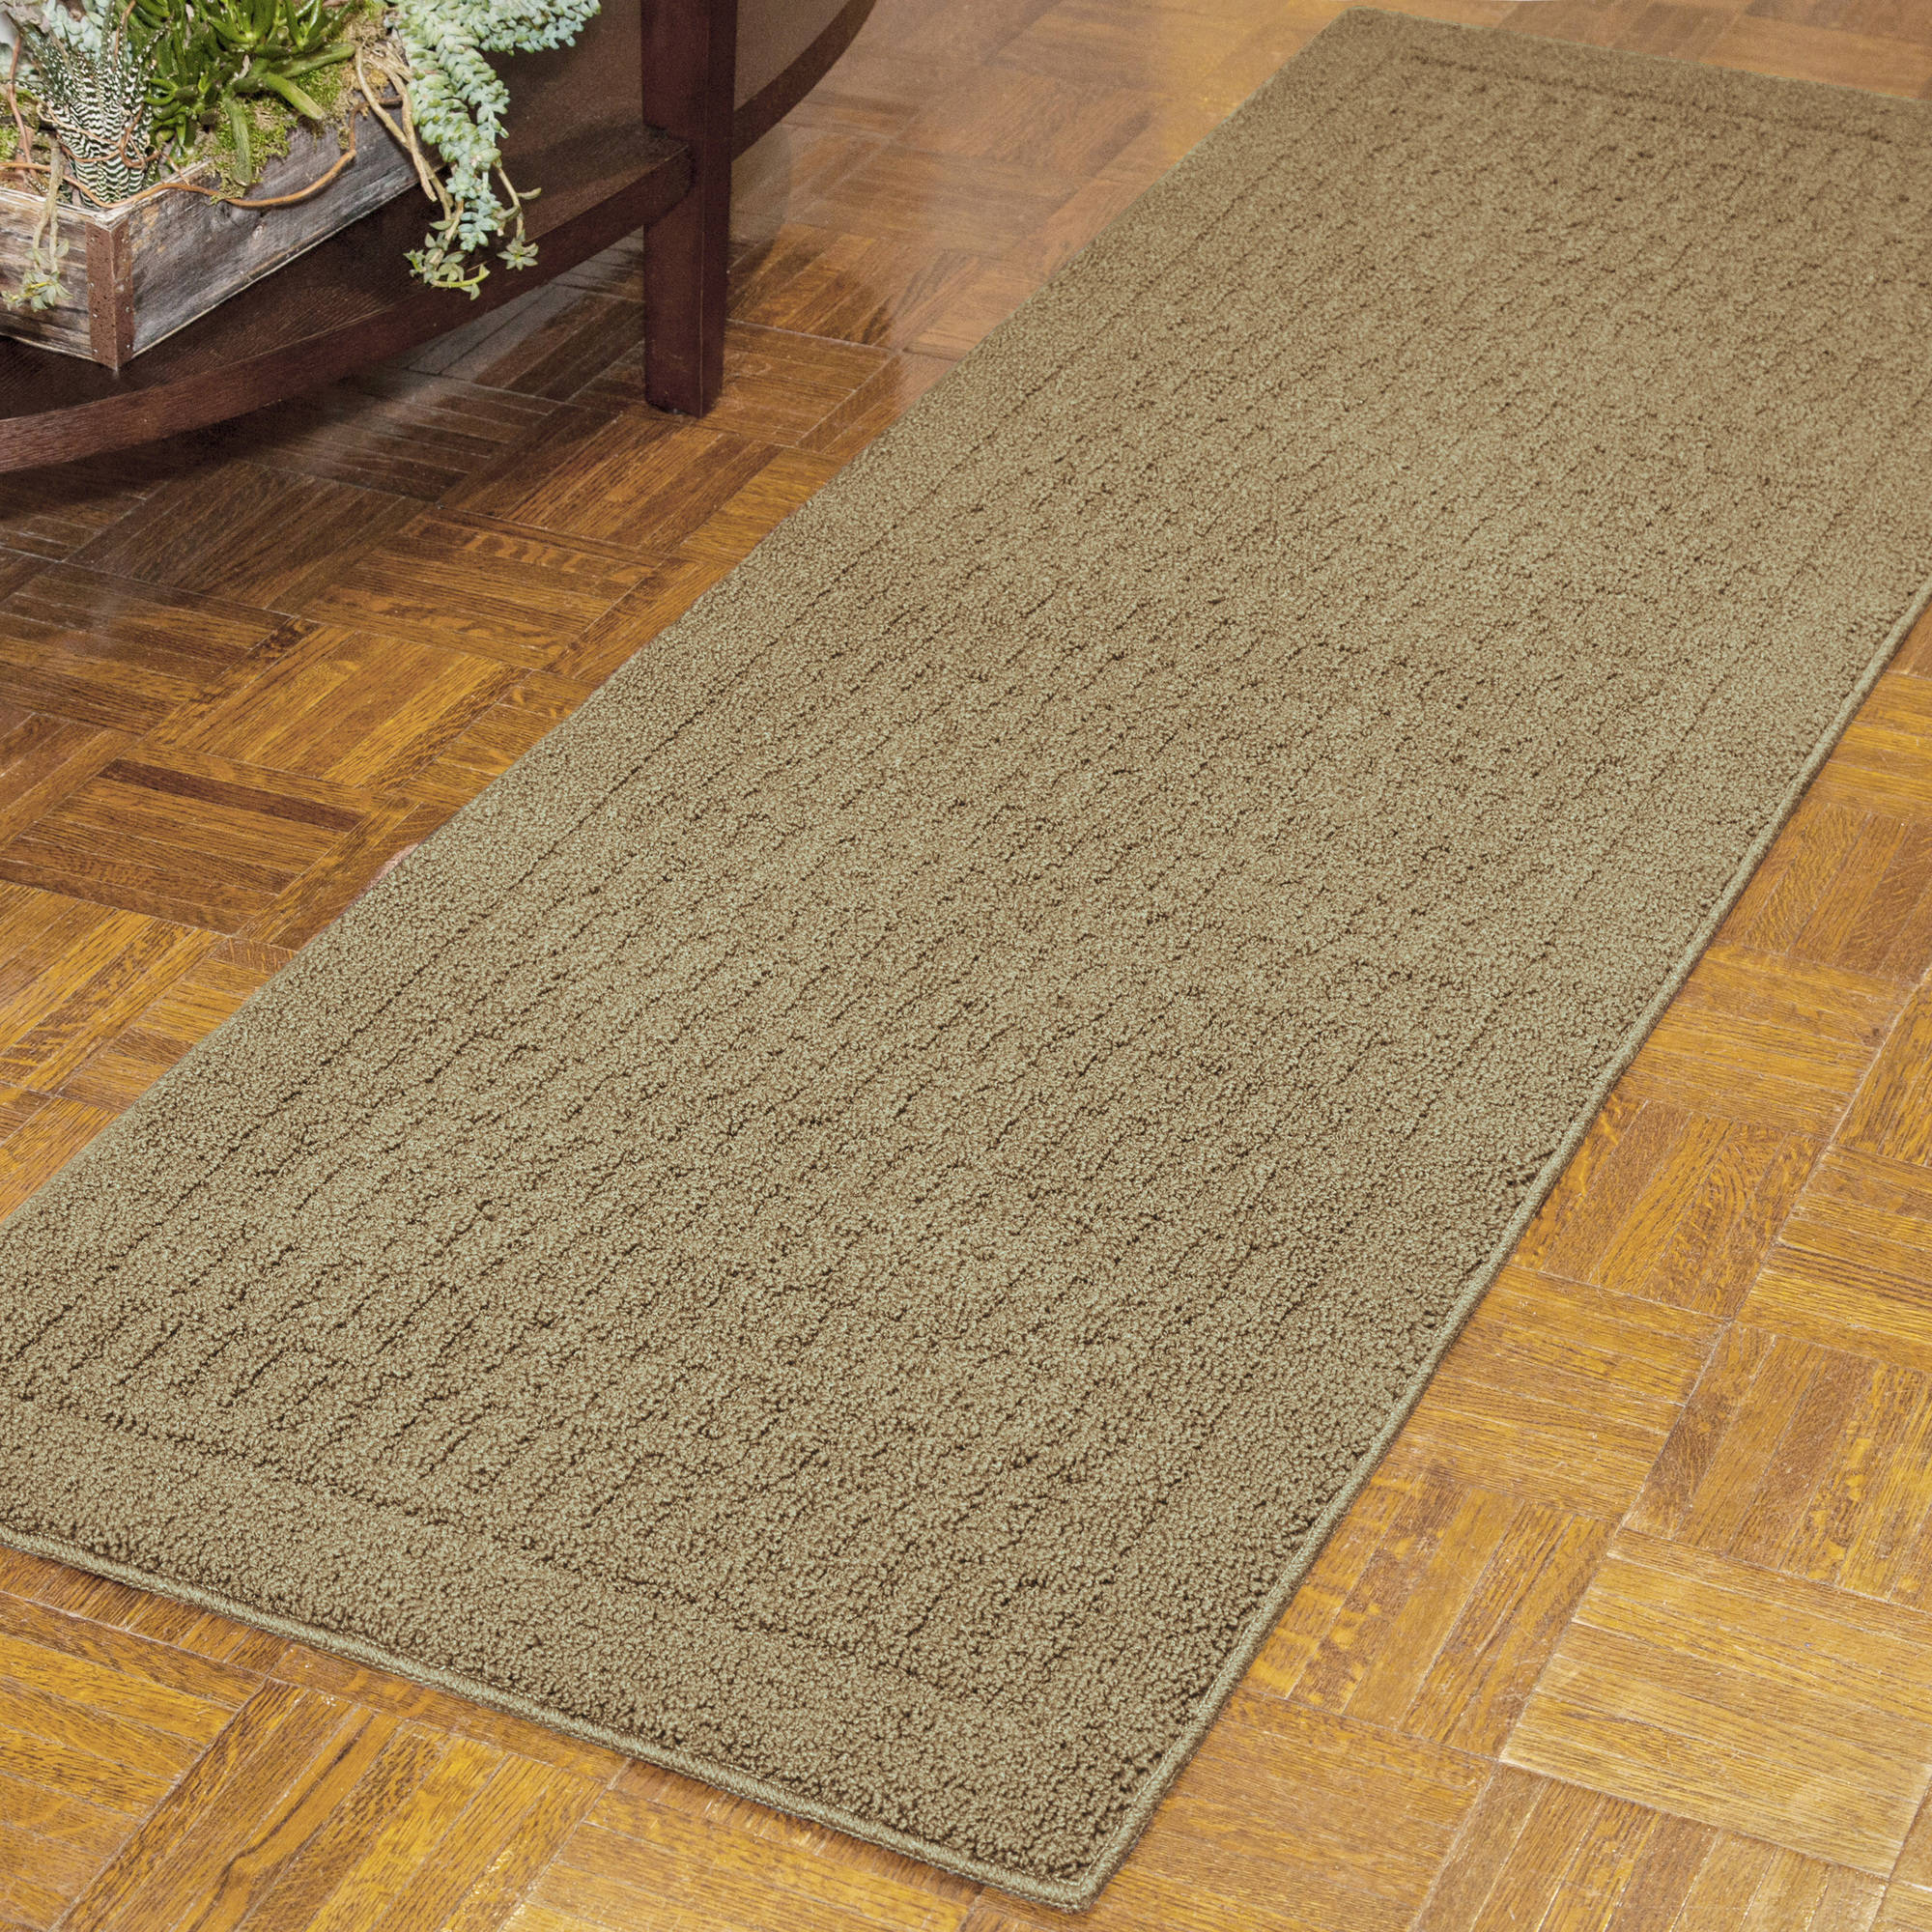 Mainstays Dylan Nylon Runner Rug Collection